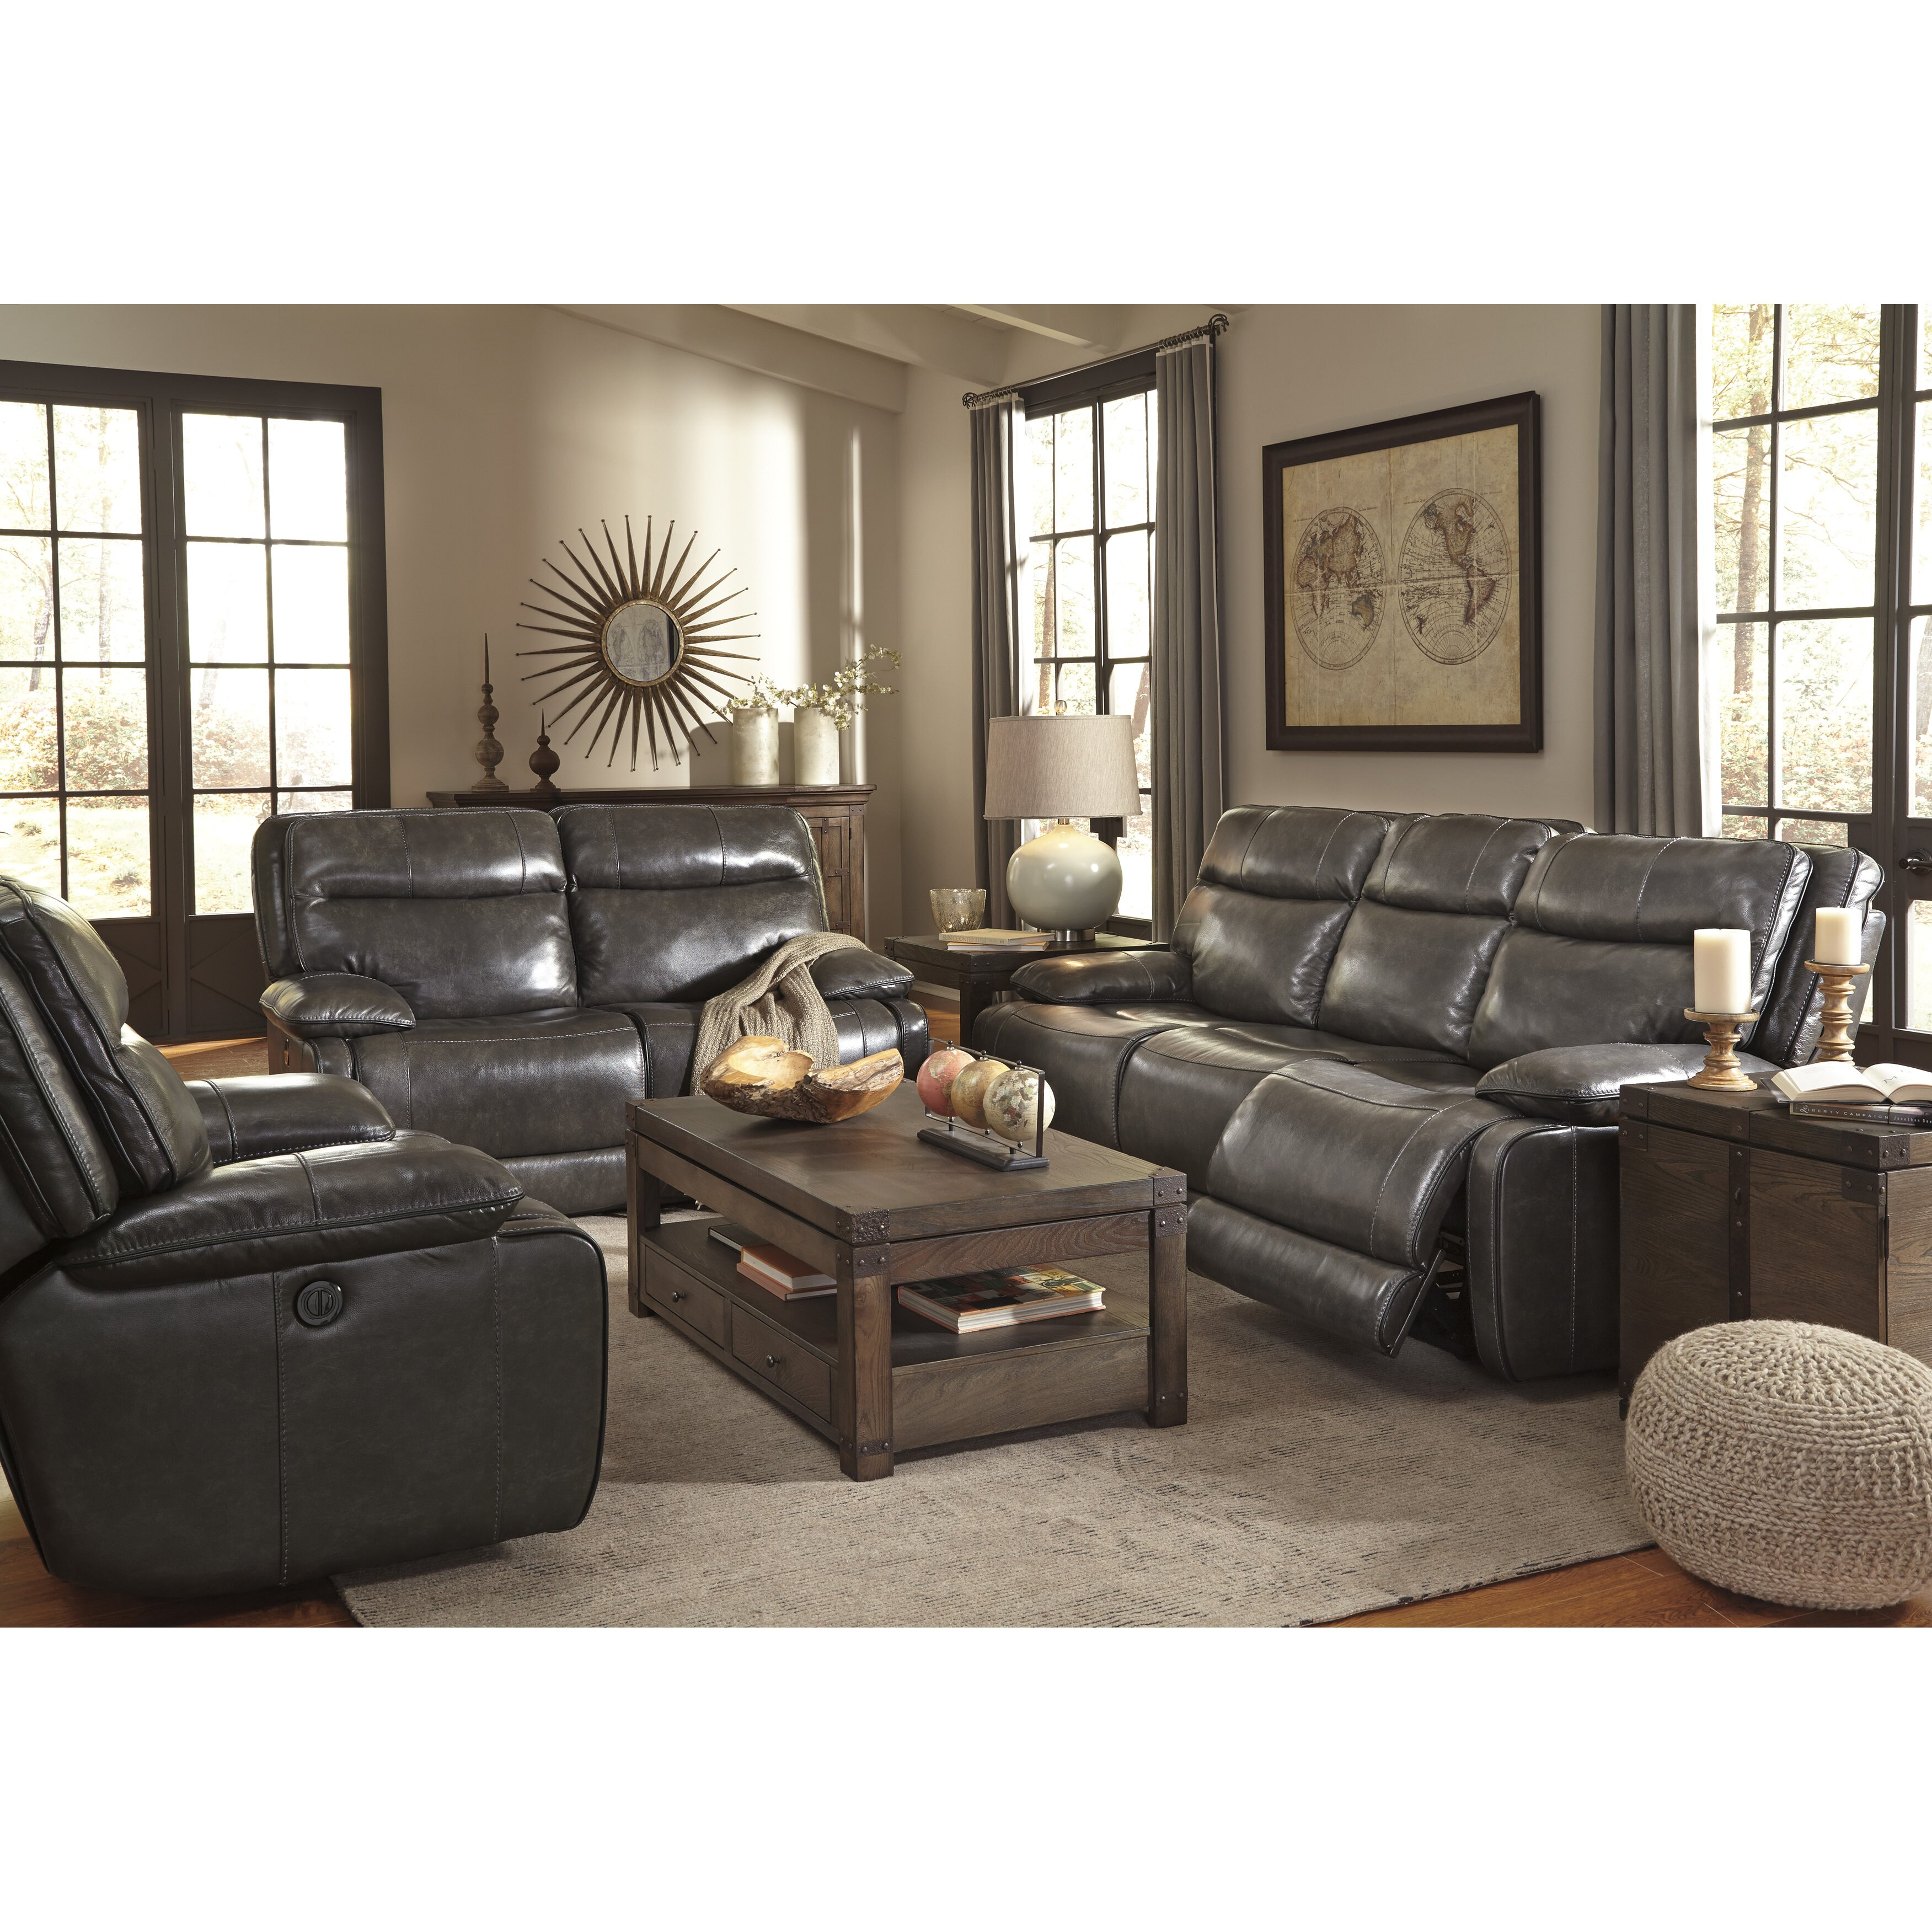 Signature design by ashley living room collection wayfair for Living room ideas ashley furniture